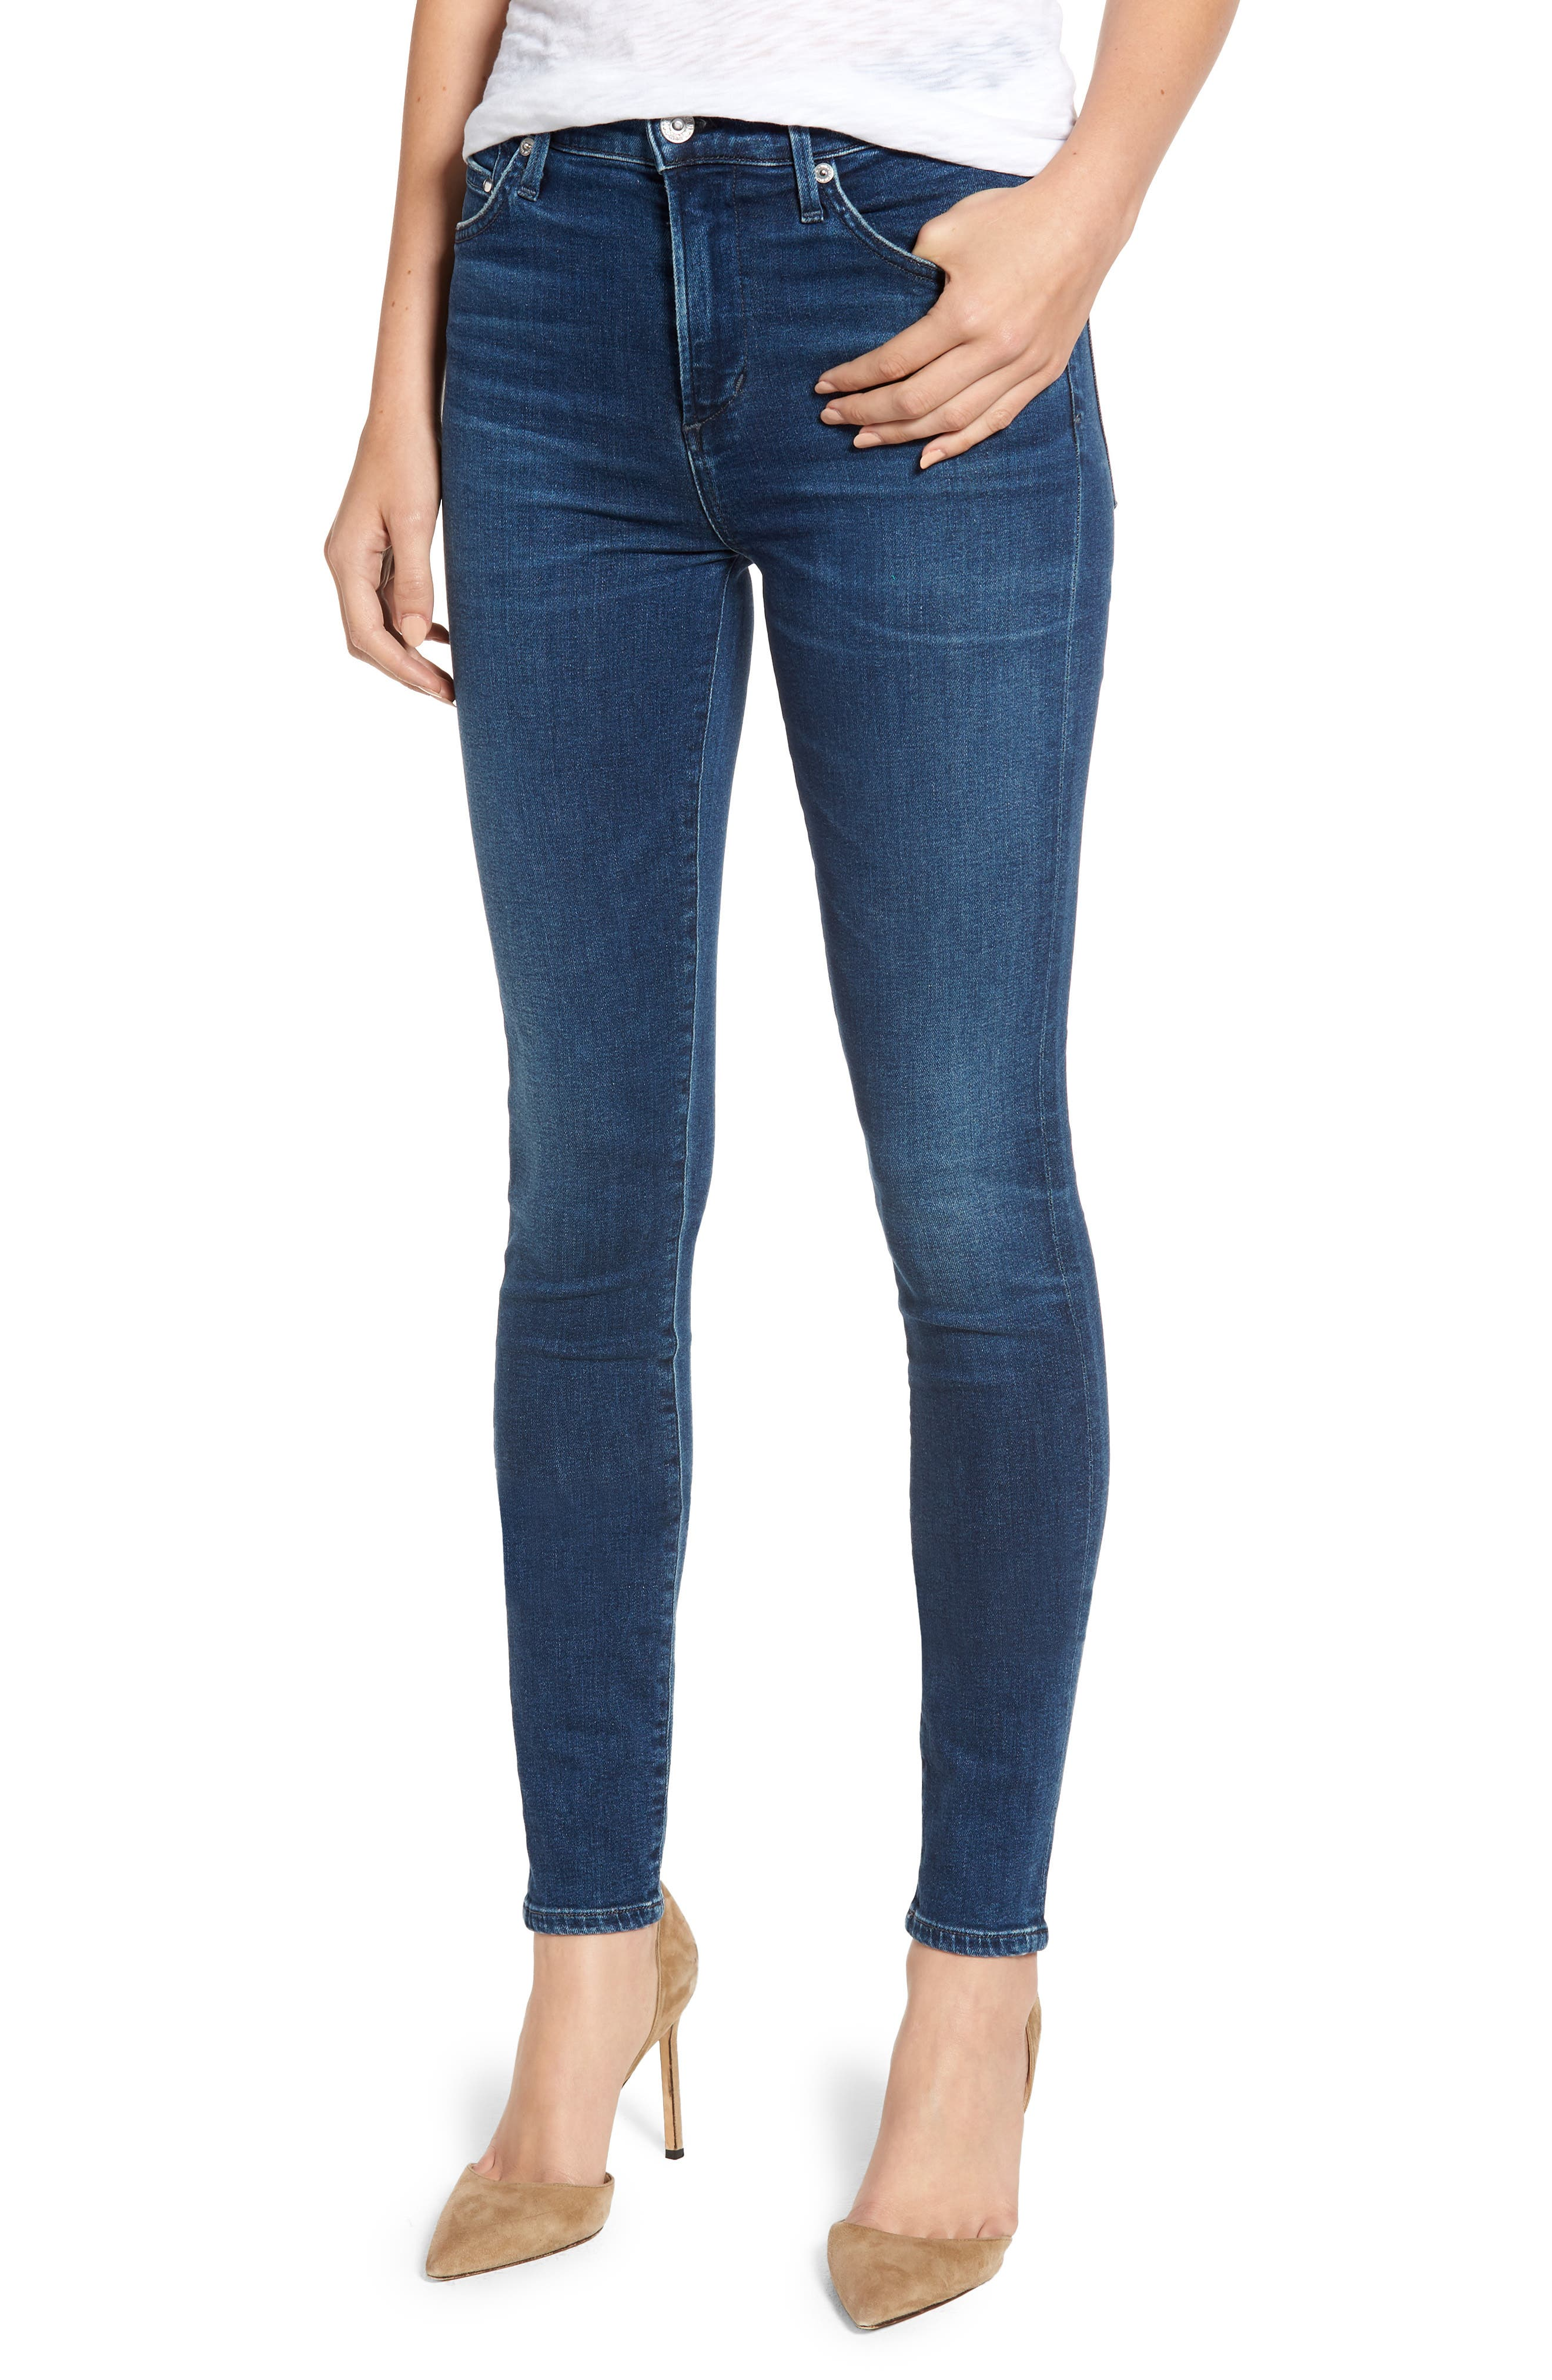 CITIZENS OF HUMANITY Rocket Skinny Jeans, Main, color, GLORY